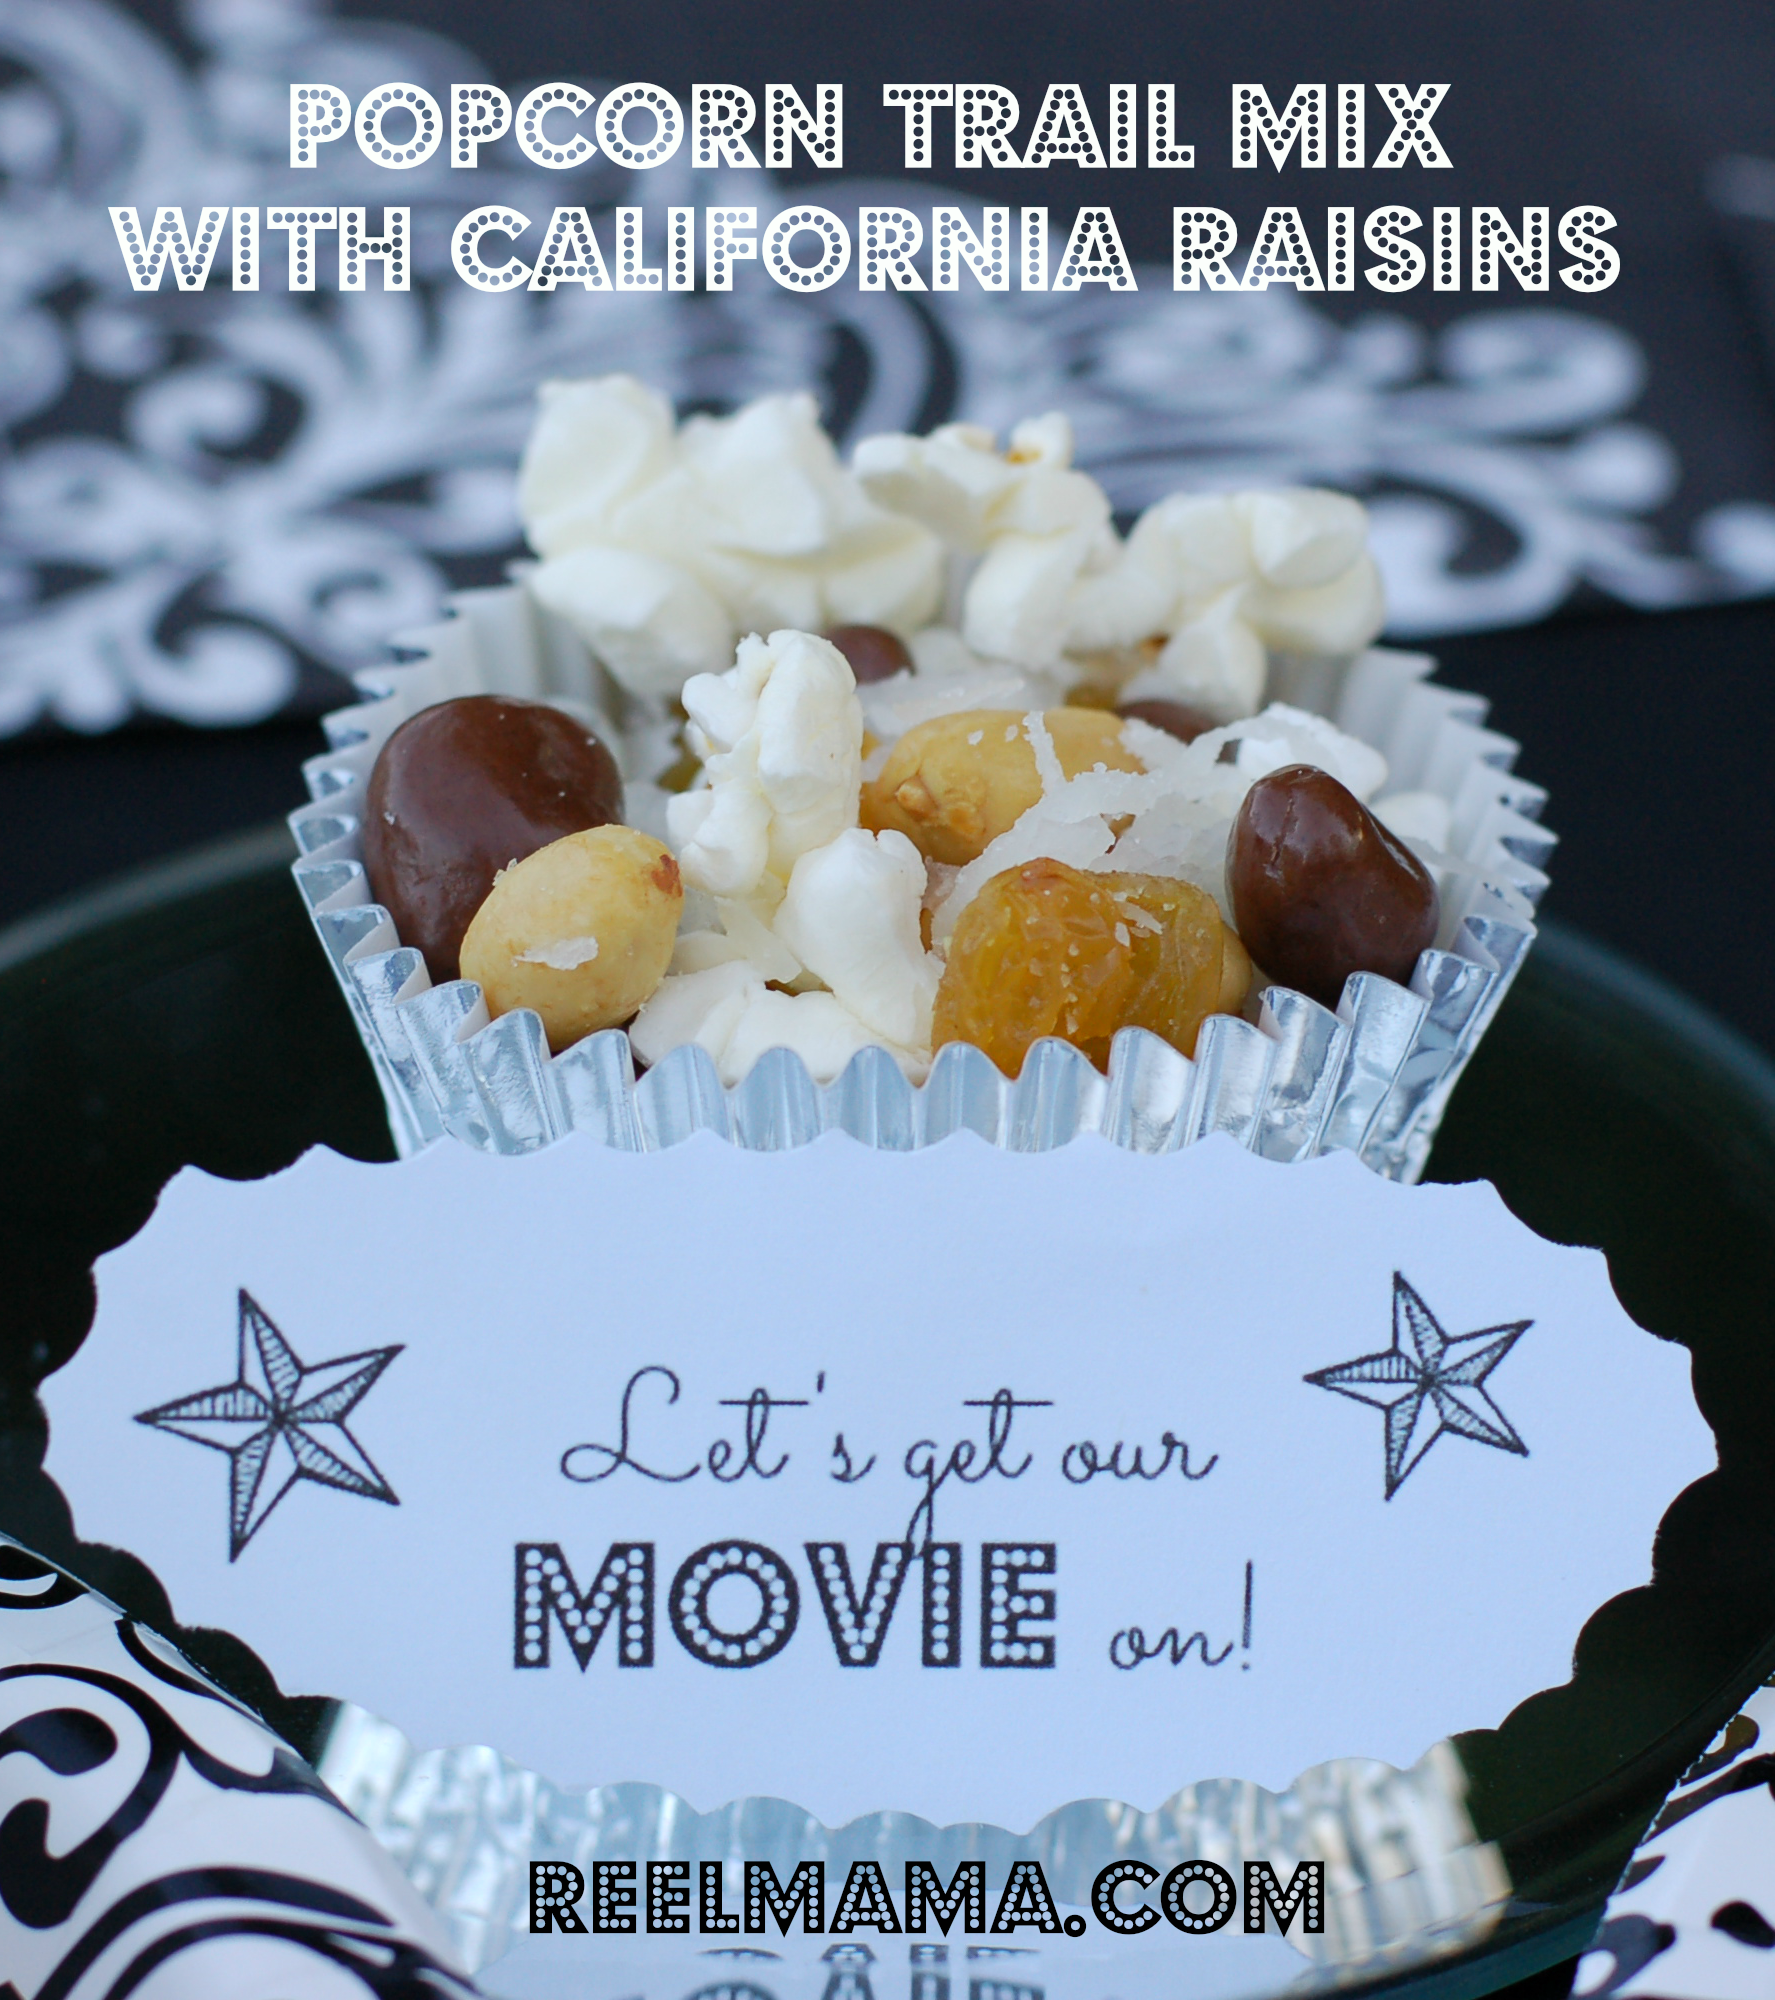 Popcorn trail mix with California raisins, the perfect family movie night snack!